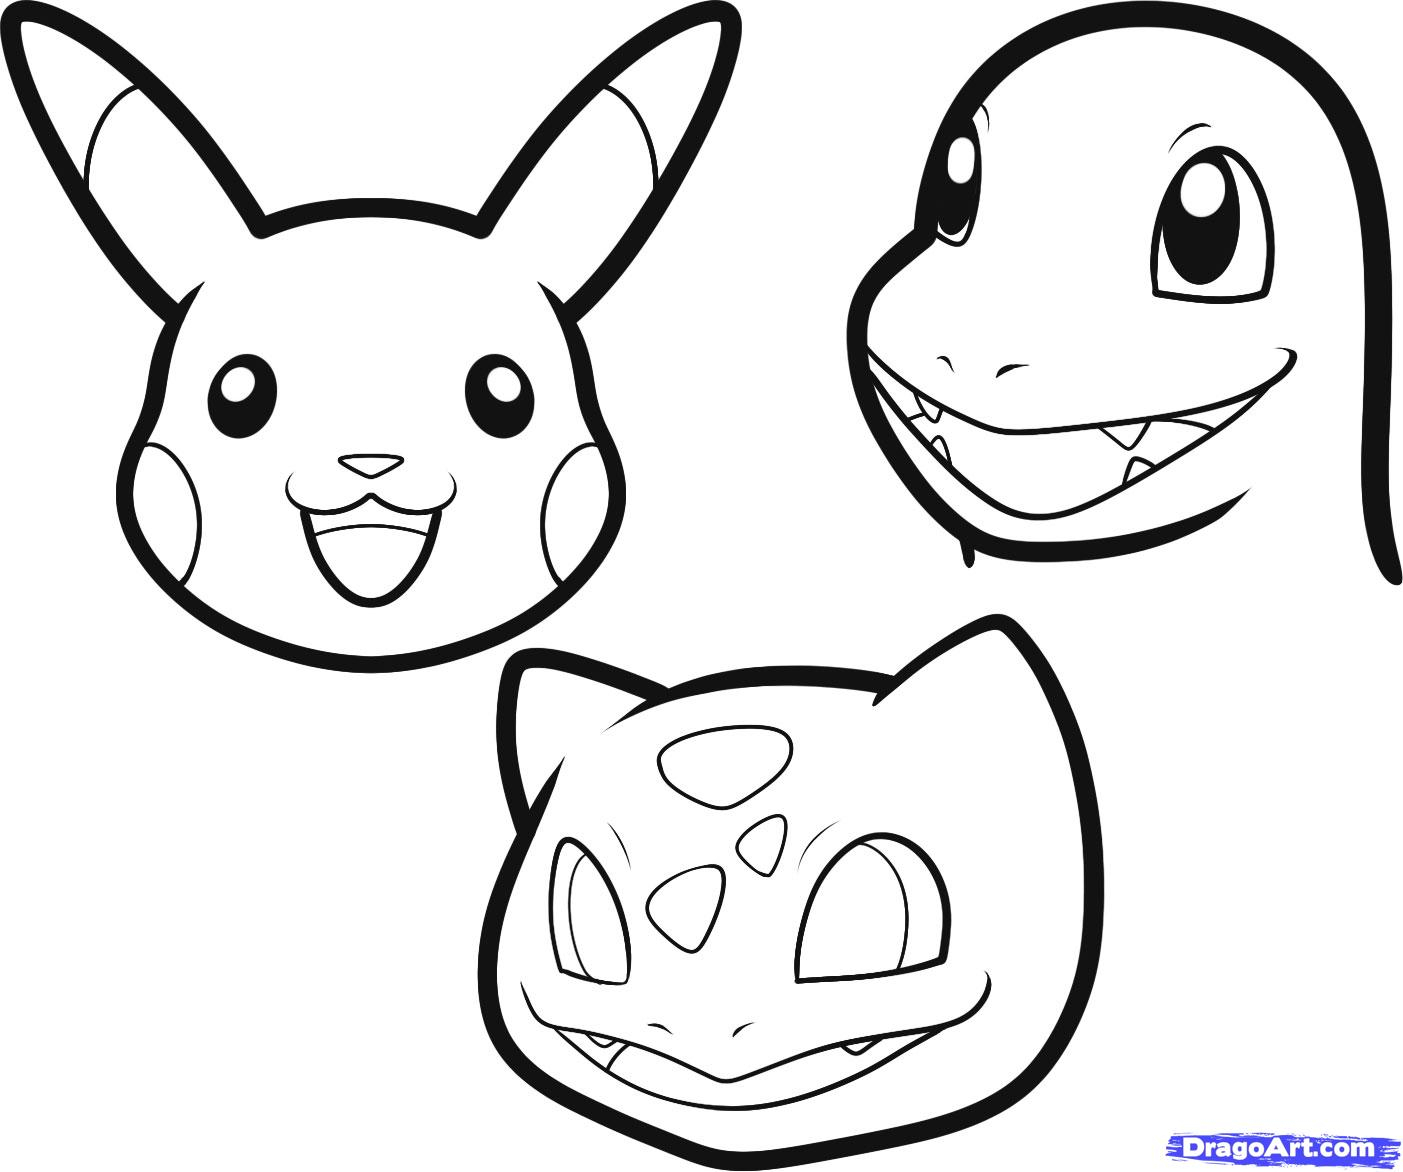 1403x1172 Simple Anime Characters To Draw 5. How To Draw Pokemon Easy